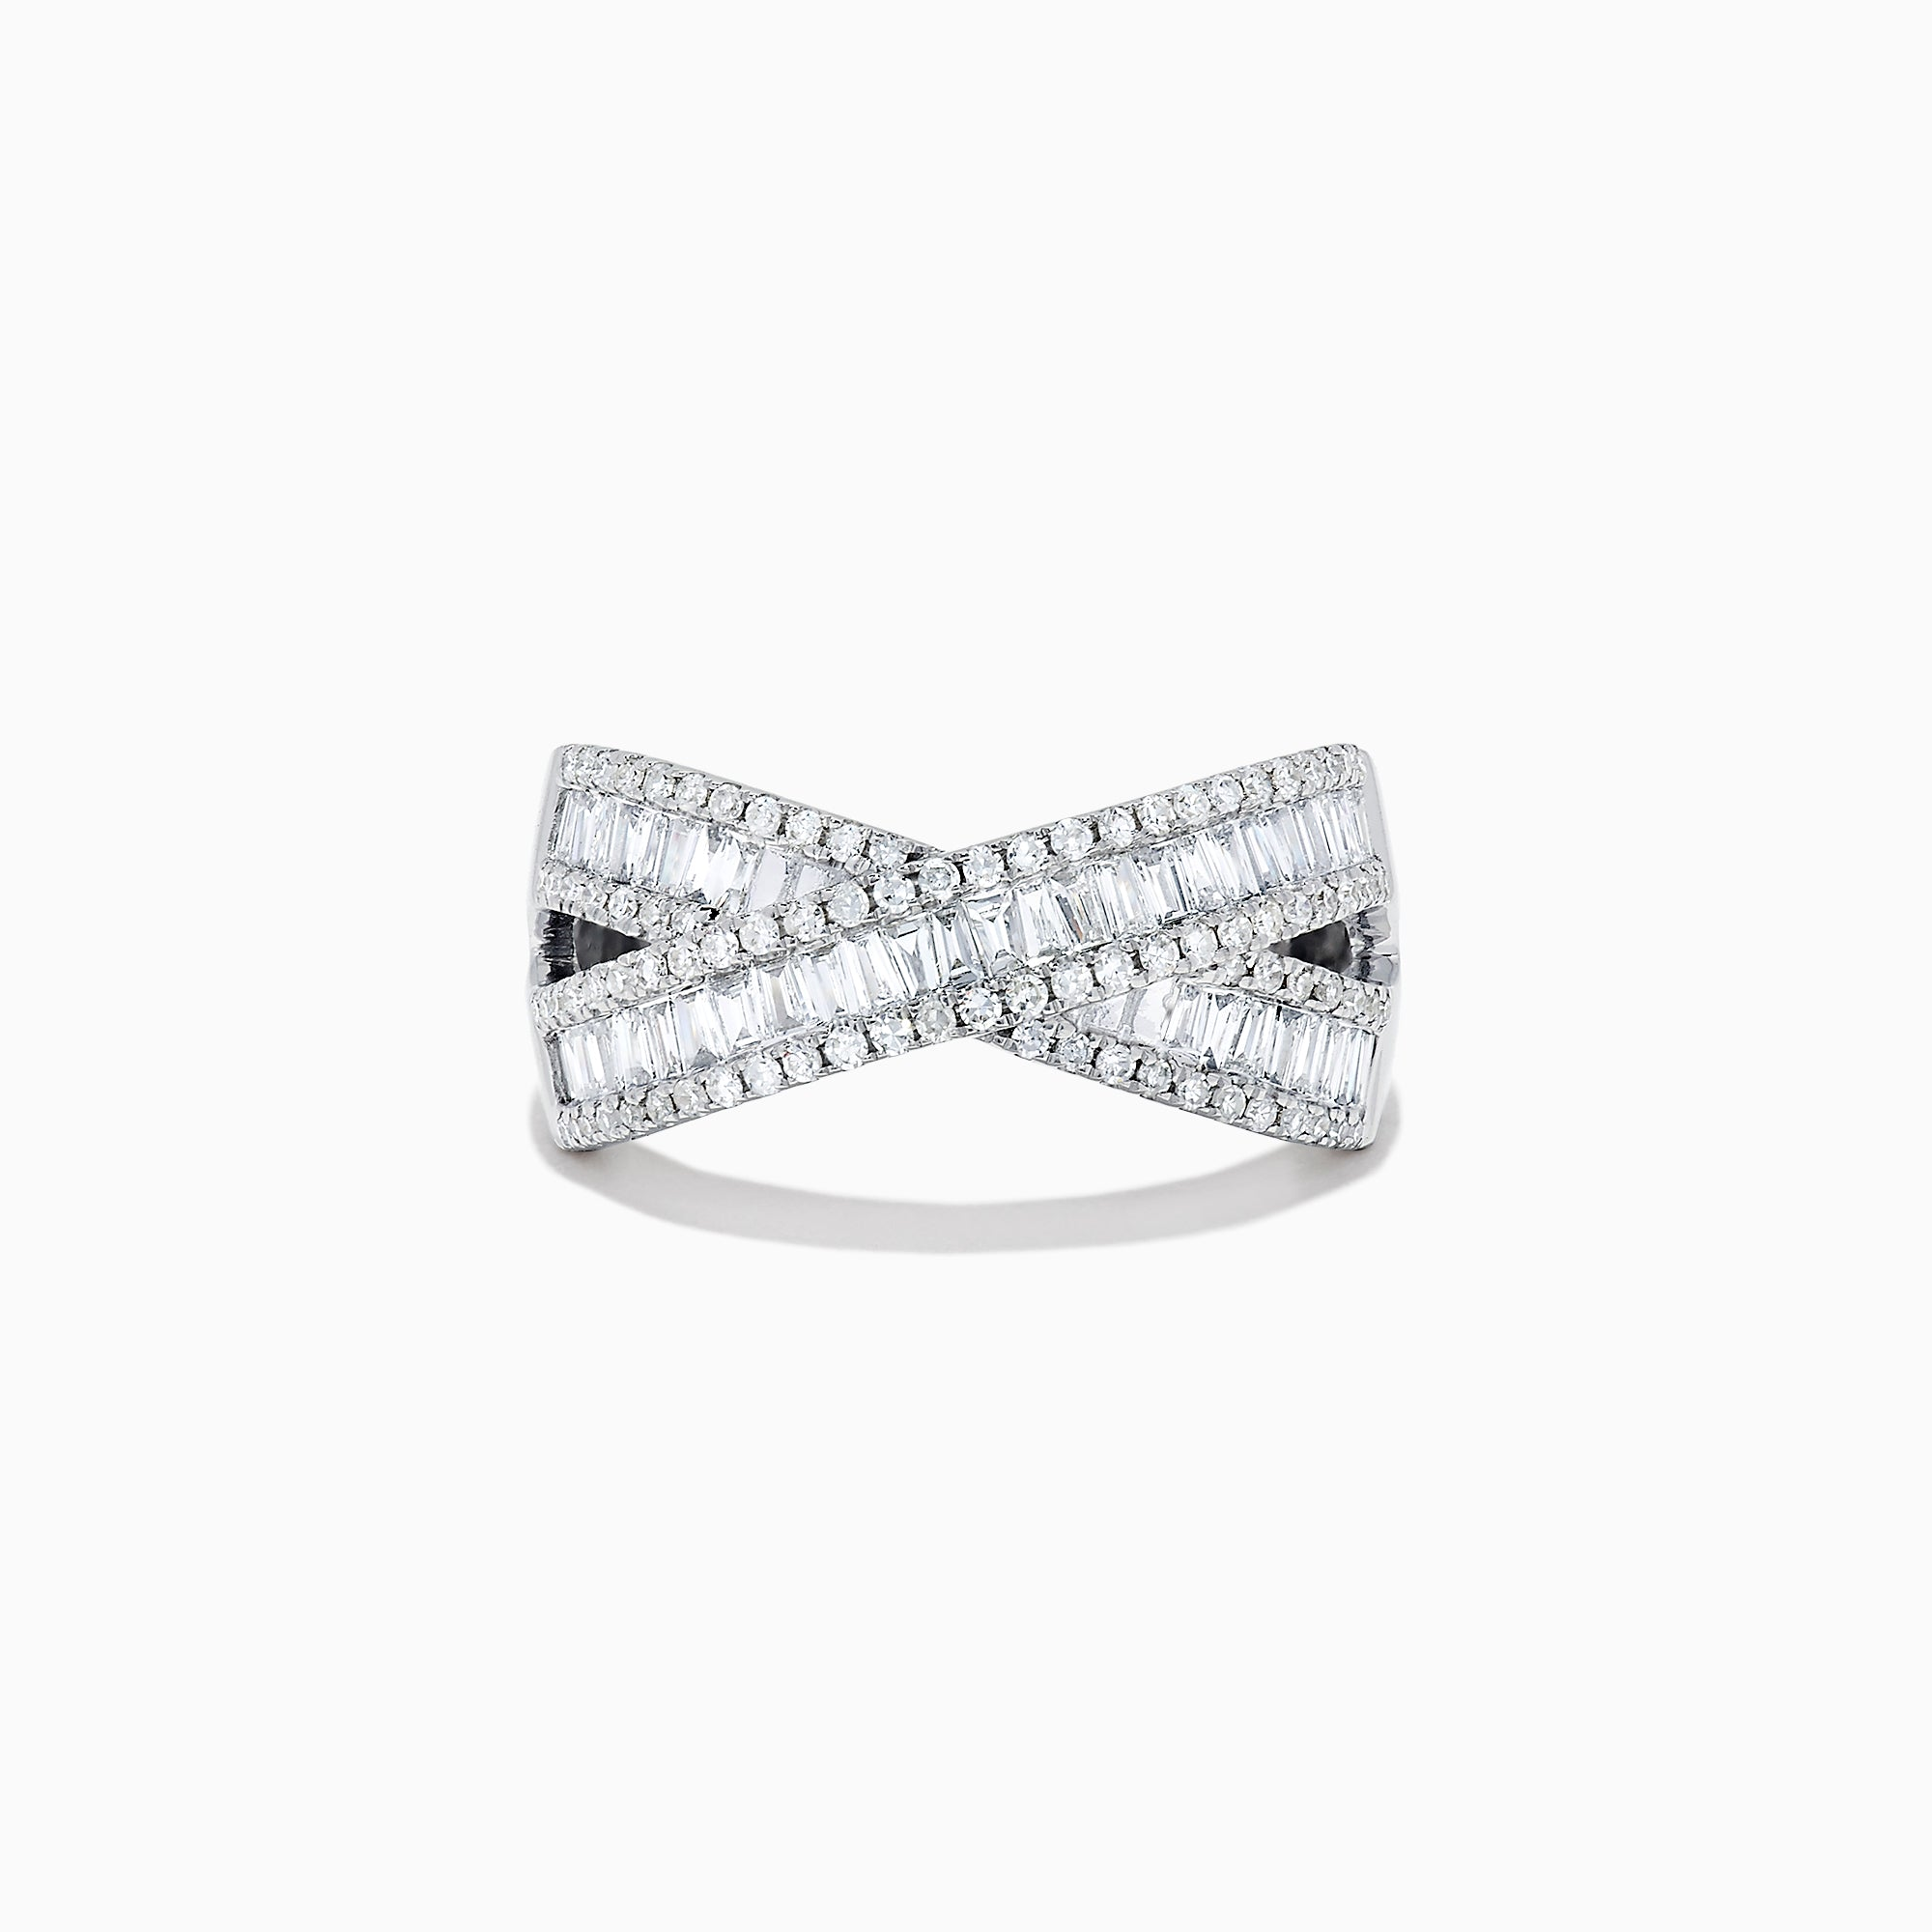 Effy Classique 14K White Gold Diamond Cross Over Ring, 0.95 TCW